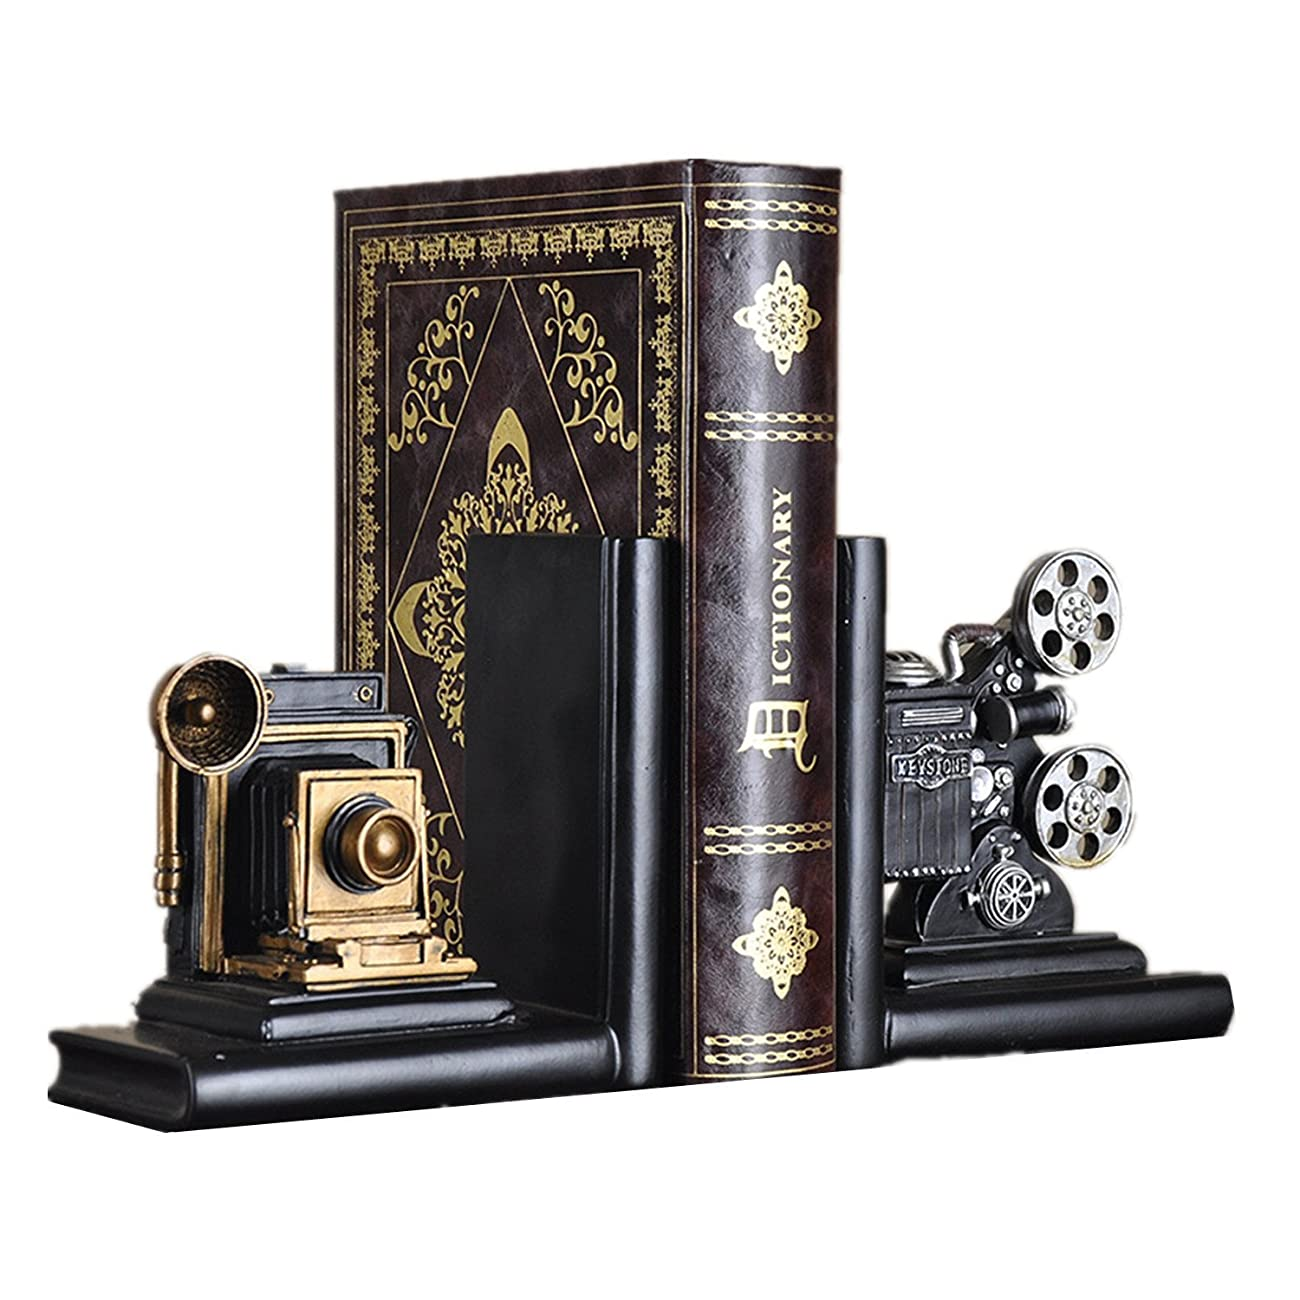 HEYFAIR Retro Camera Bookends Racks Book Ends Sets Bookshelf Organizers(1 pair) 0